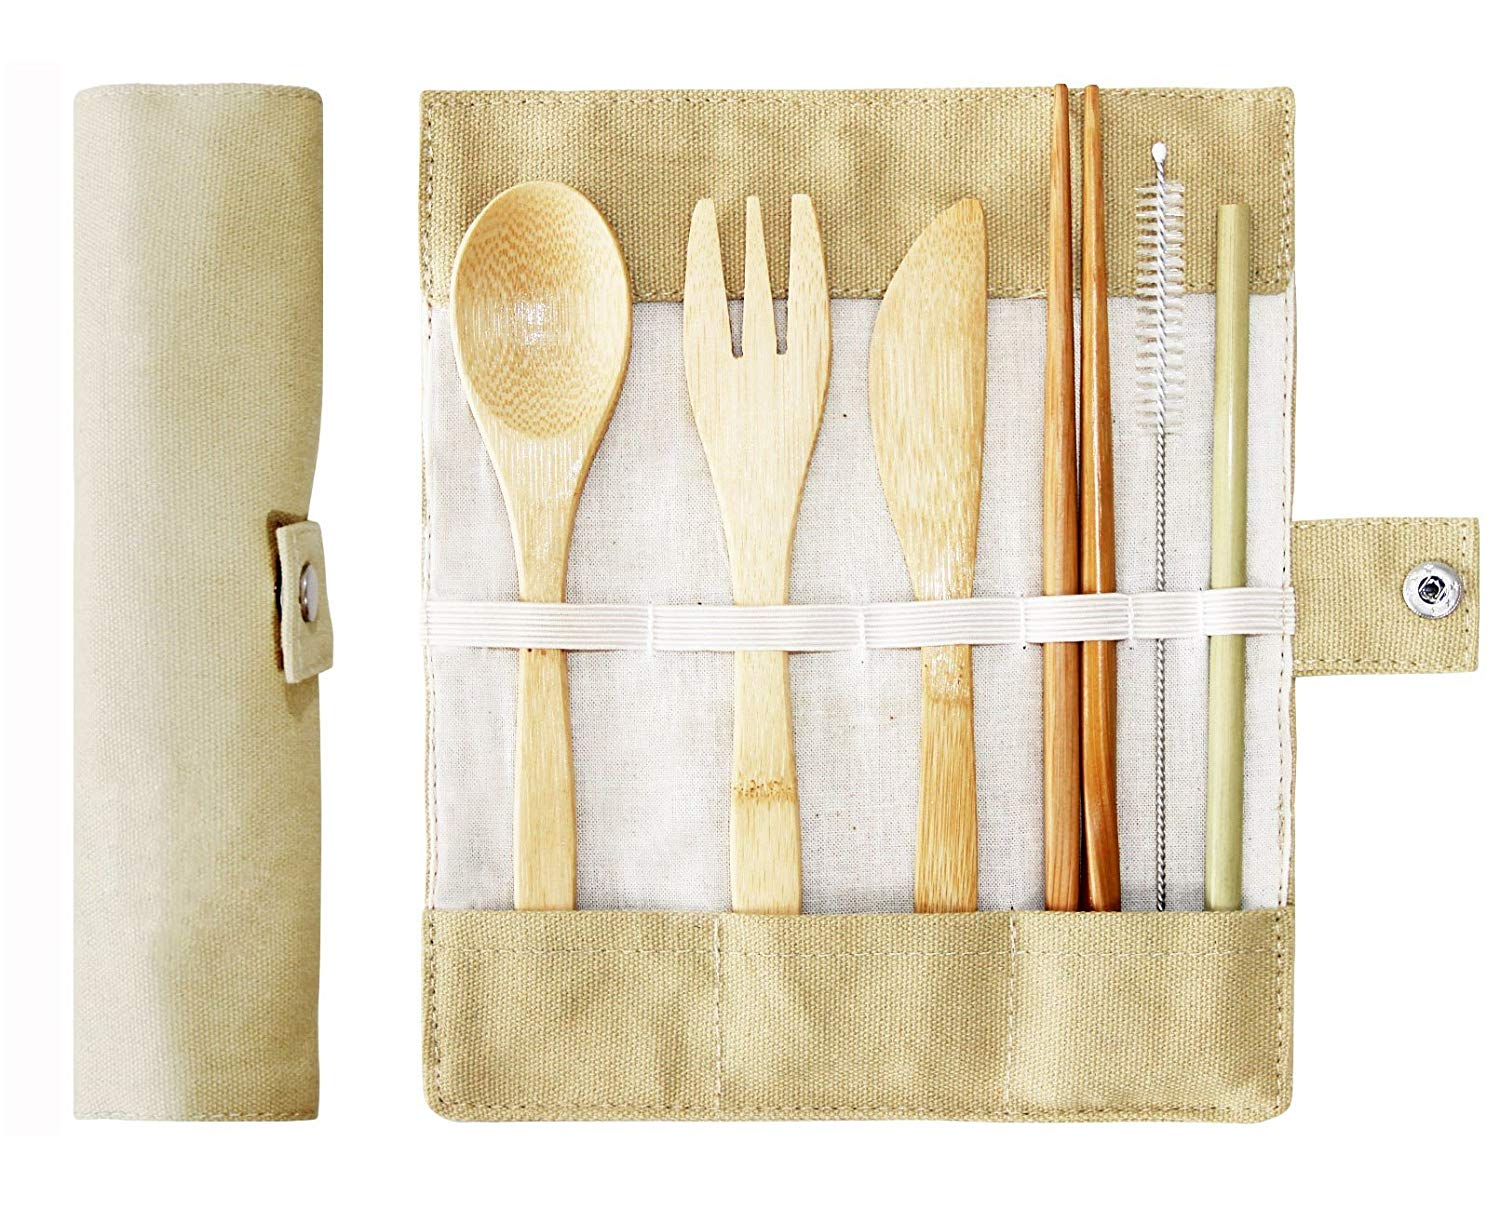 Bamboo Cutlery Set,Travel Cutlery Set,Bamboo Travel Utensils,Wooden Cutlery Set, Reusable Portable, Perfect For Outdoor Camping,Travel,Lunch At Work(Fork,Spoon,Knife,Chopsticks, Straw And Brush)